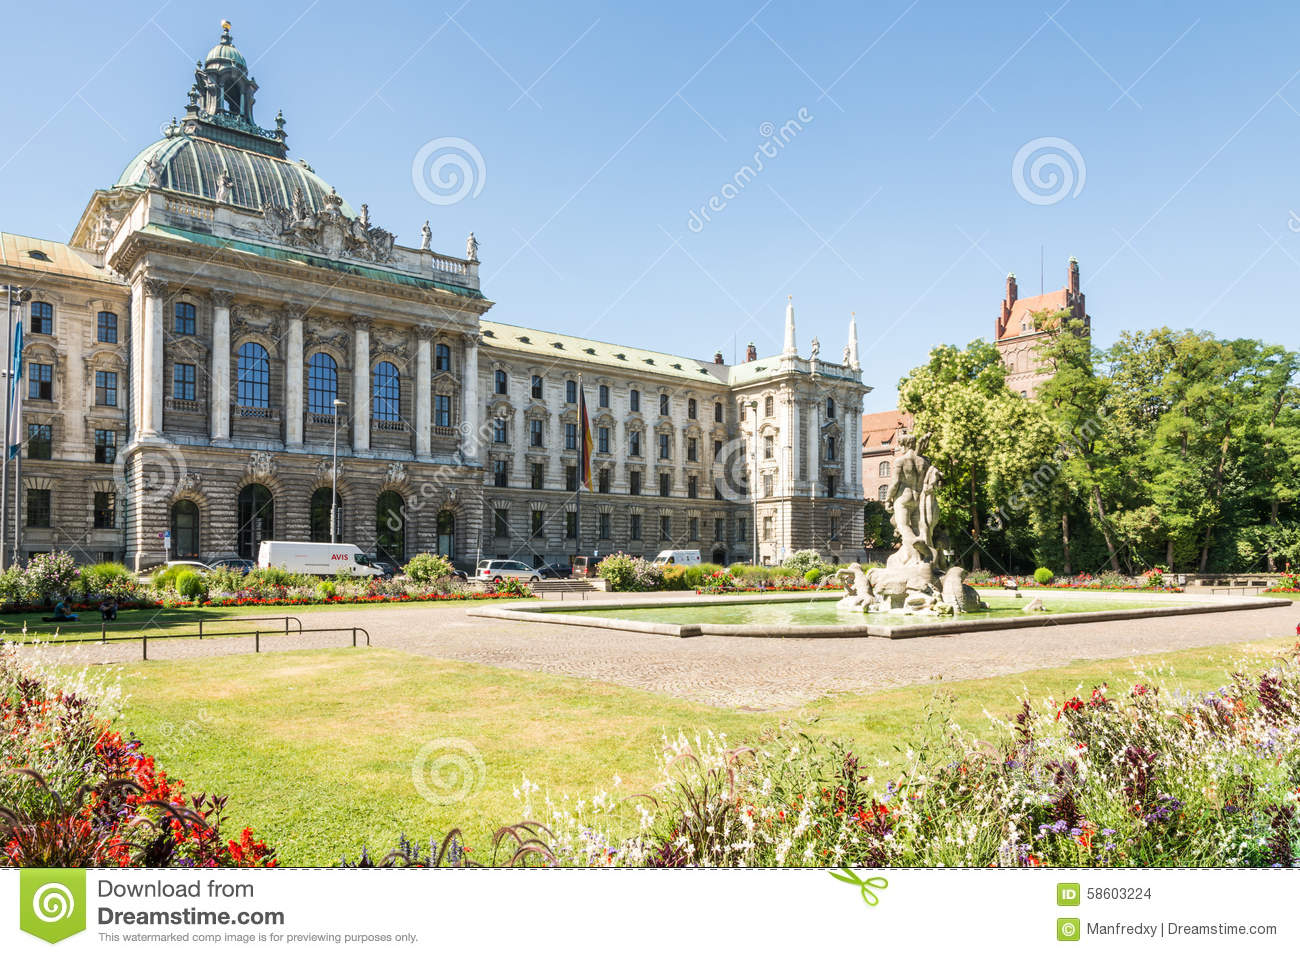 alter botanischer garten and palace of justice in munich editorial stock image image 58603224. Black Bedroom Furniture Sets. Home Design Ideas